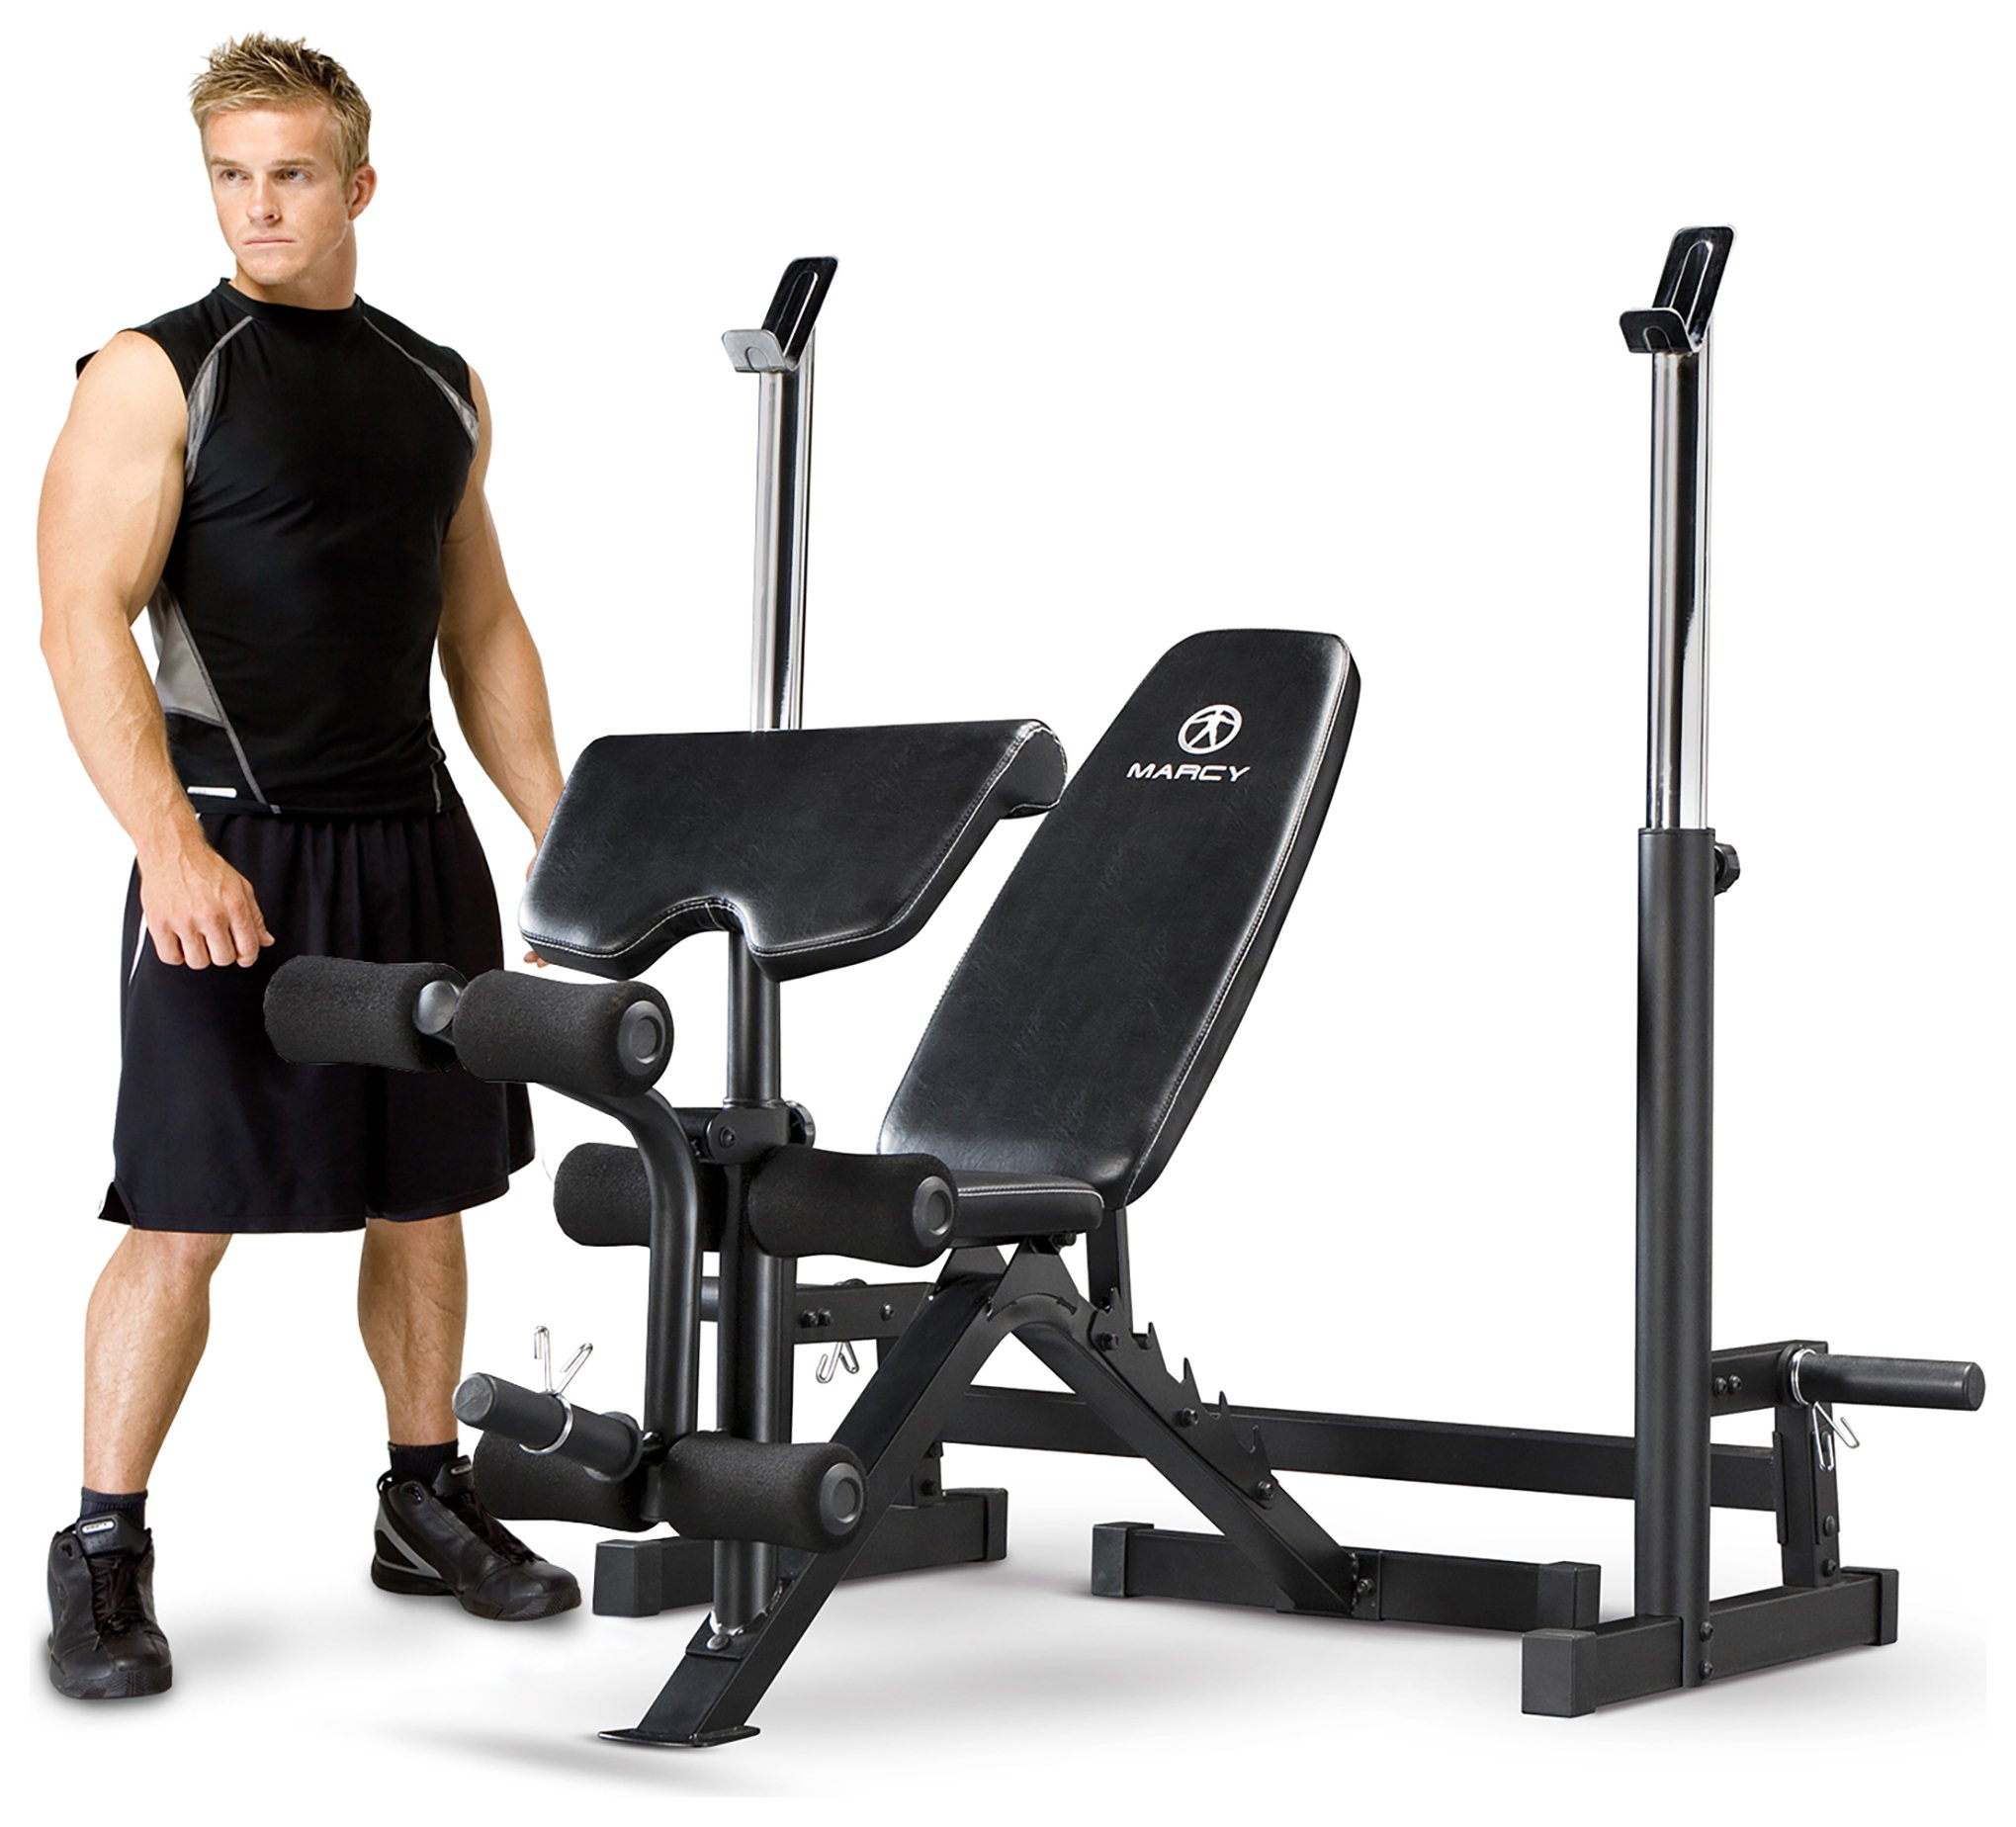 Weightlifting And Exercise Benches Page 1 Argos Price Tracker